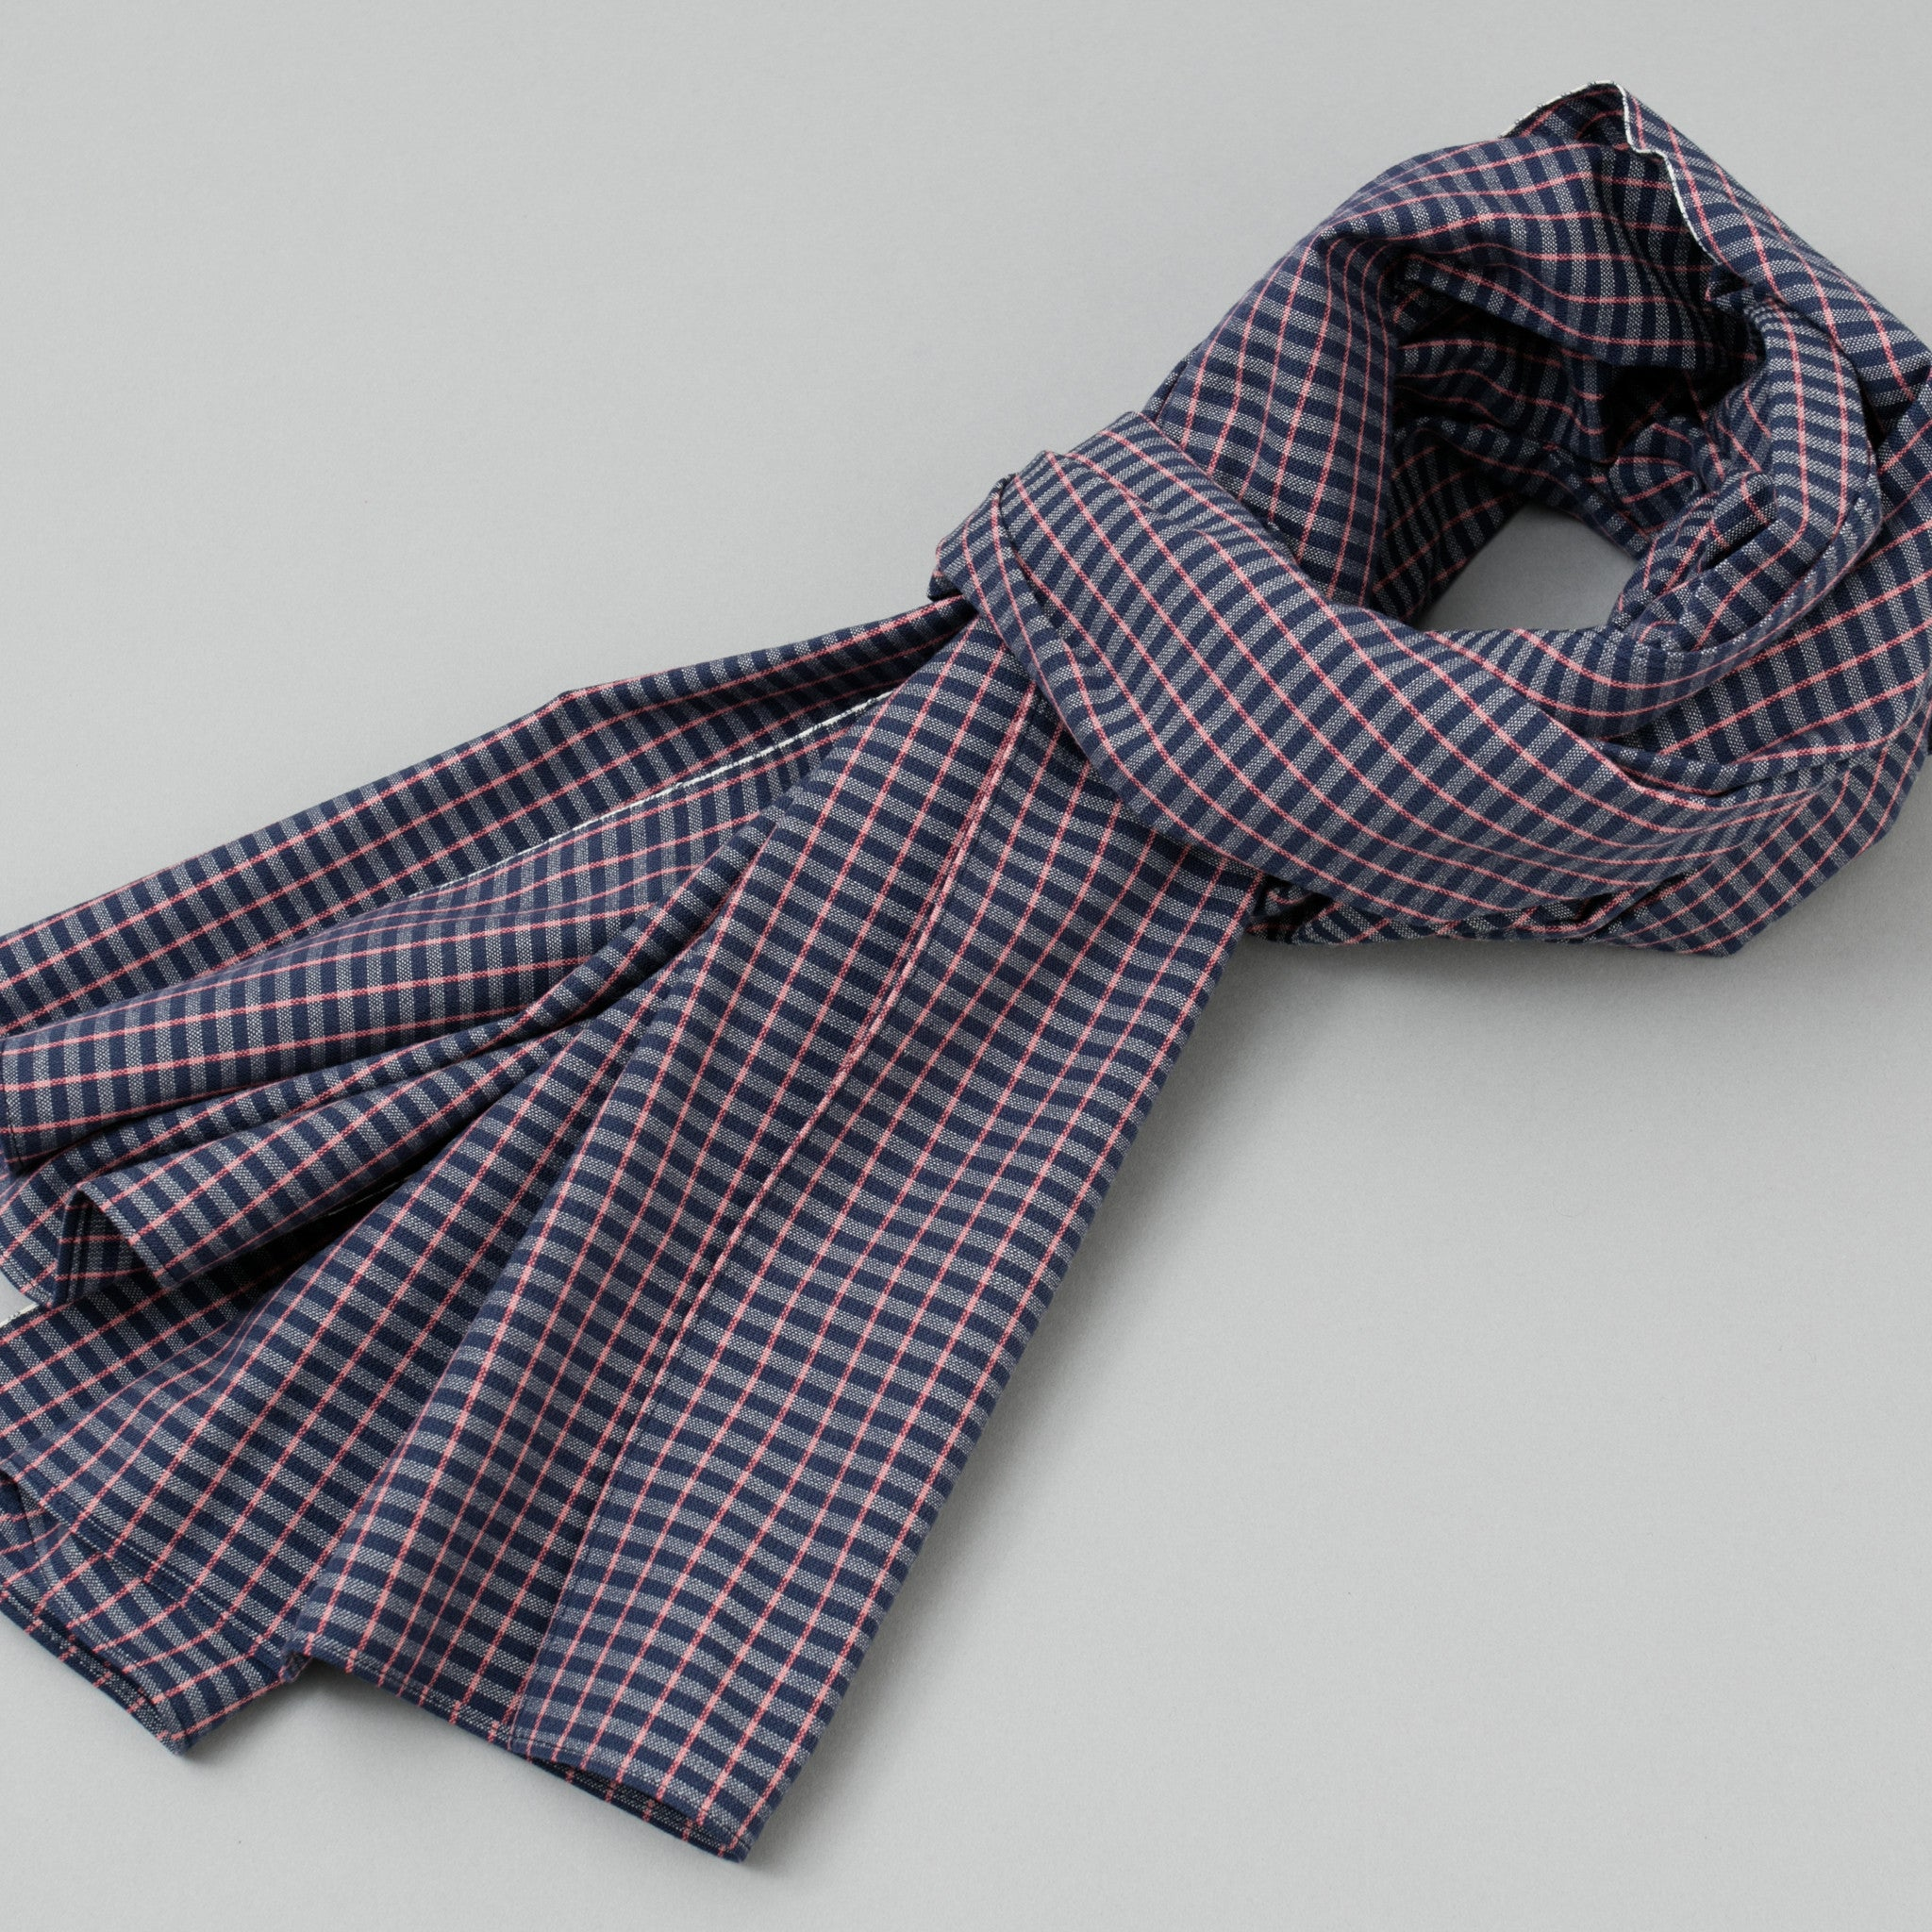 The Hill-Side - Scarf, TH-S Mills Navy Warp Grid Check, Natural & Coral - SC1-370 - image 1